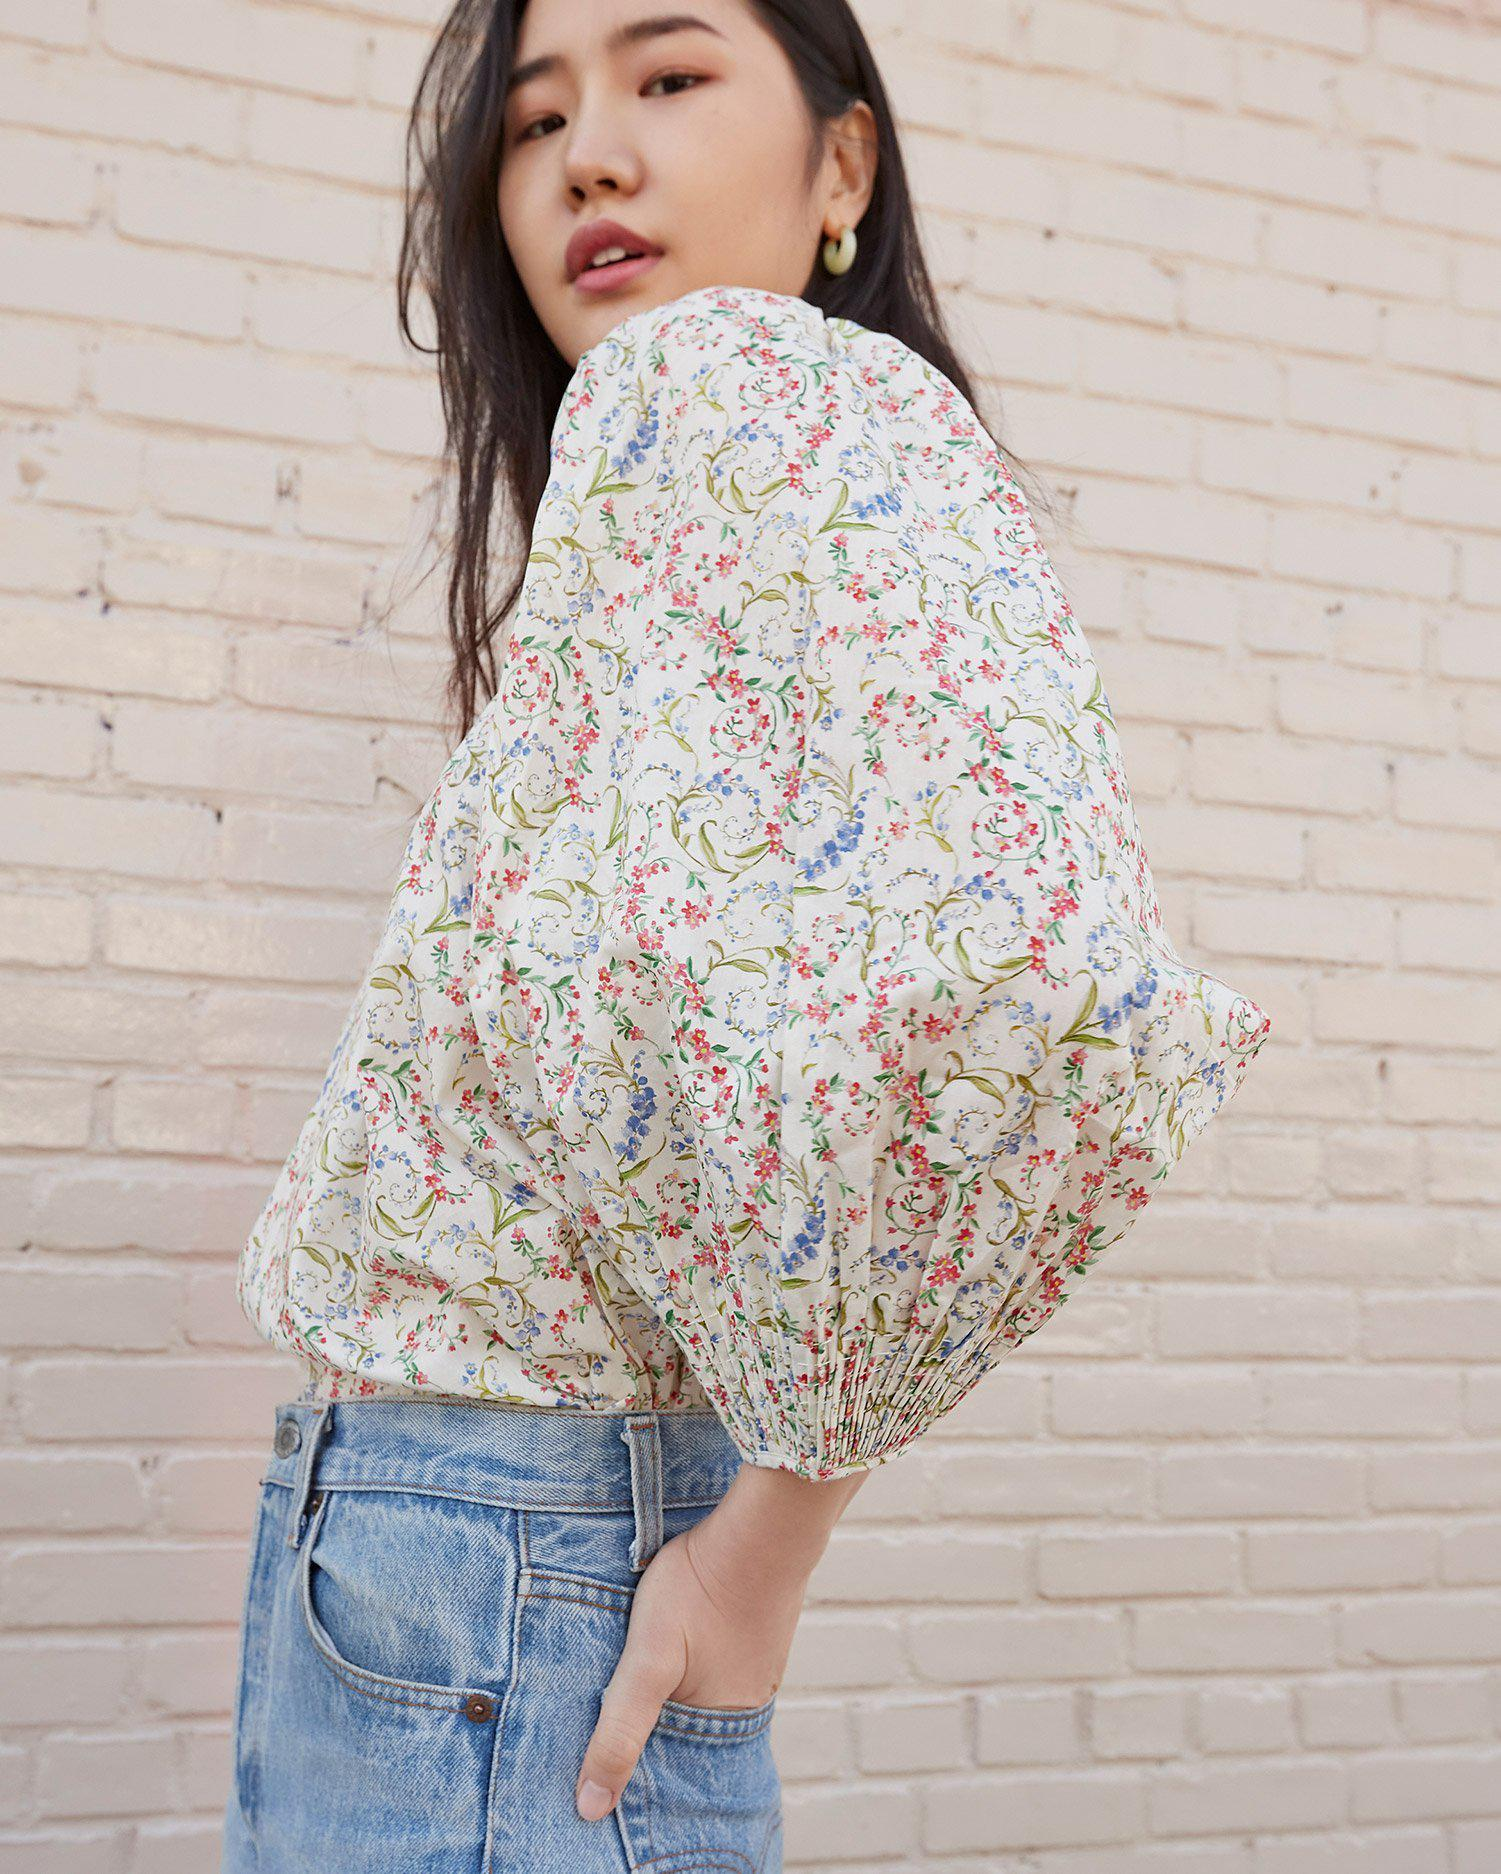 Lucia Romance Floral Smocked Blouse 1